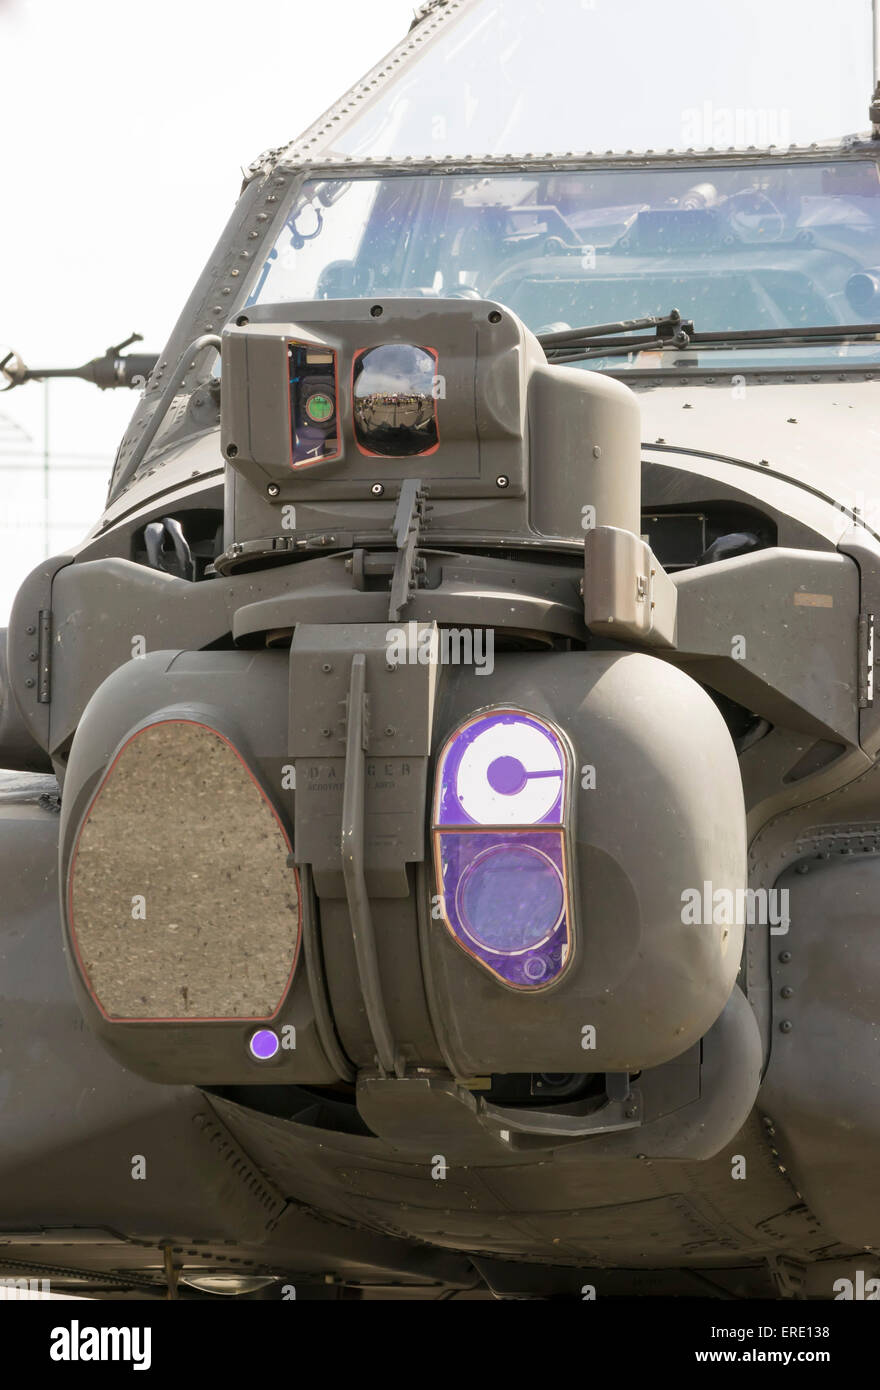 Modern attack helicopter equipped with the latest generation sensors for target localization and surveillance - Stock Image